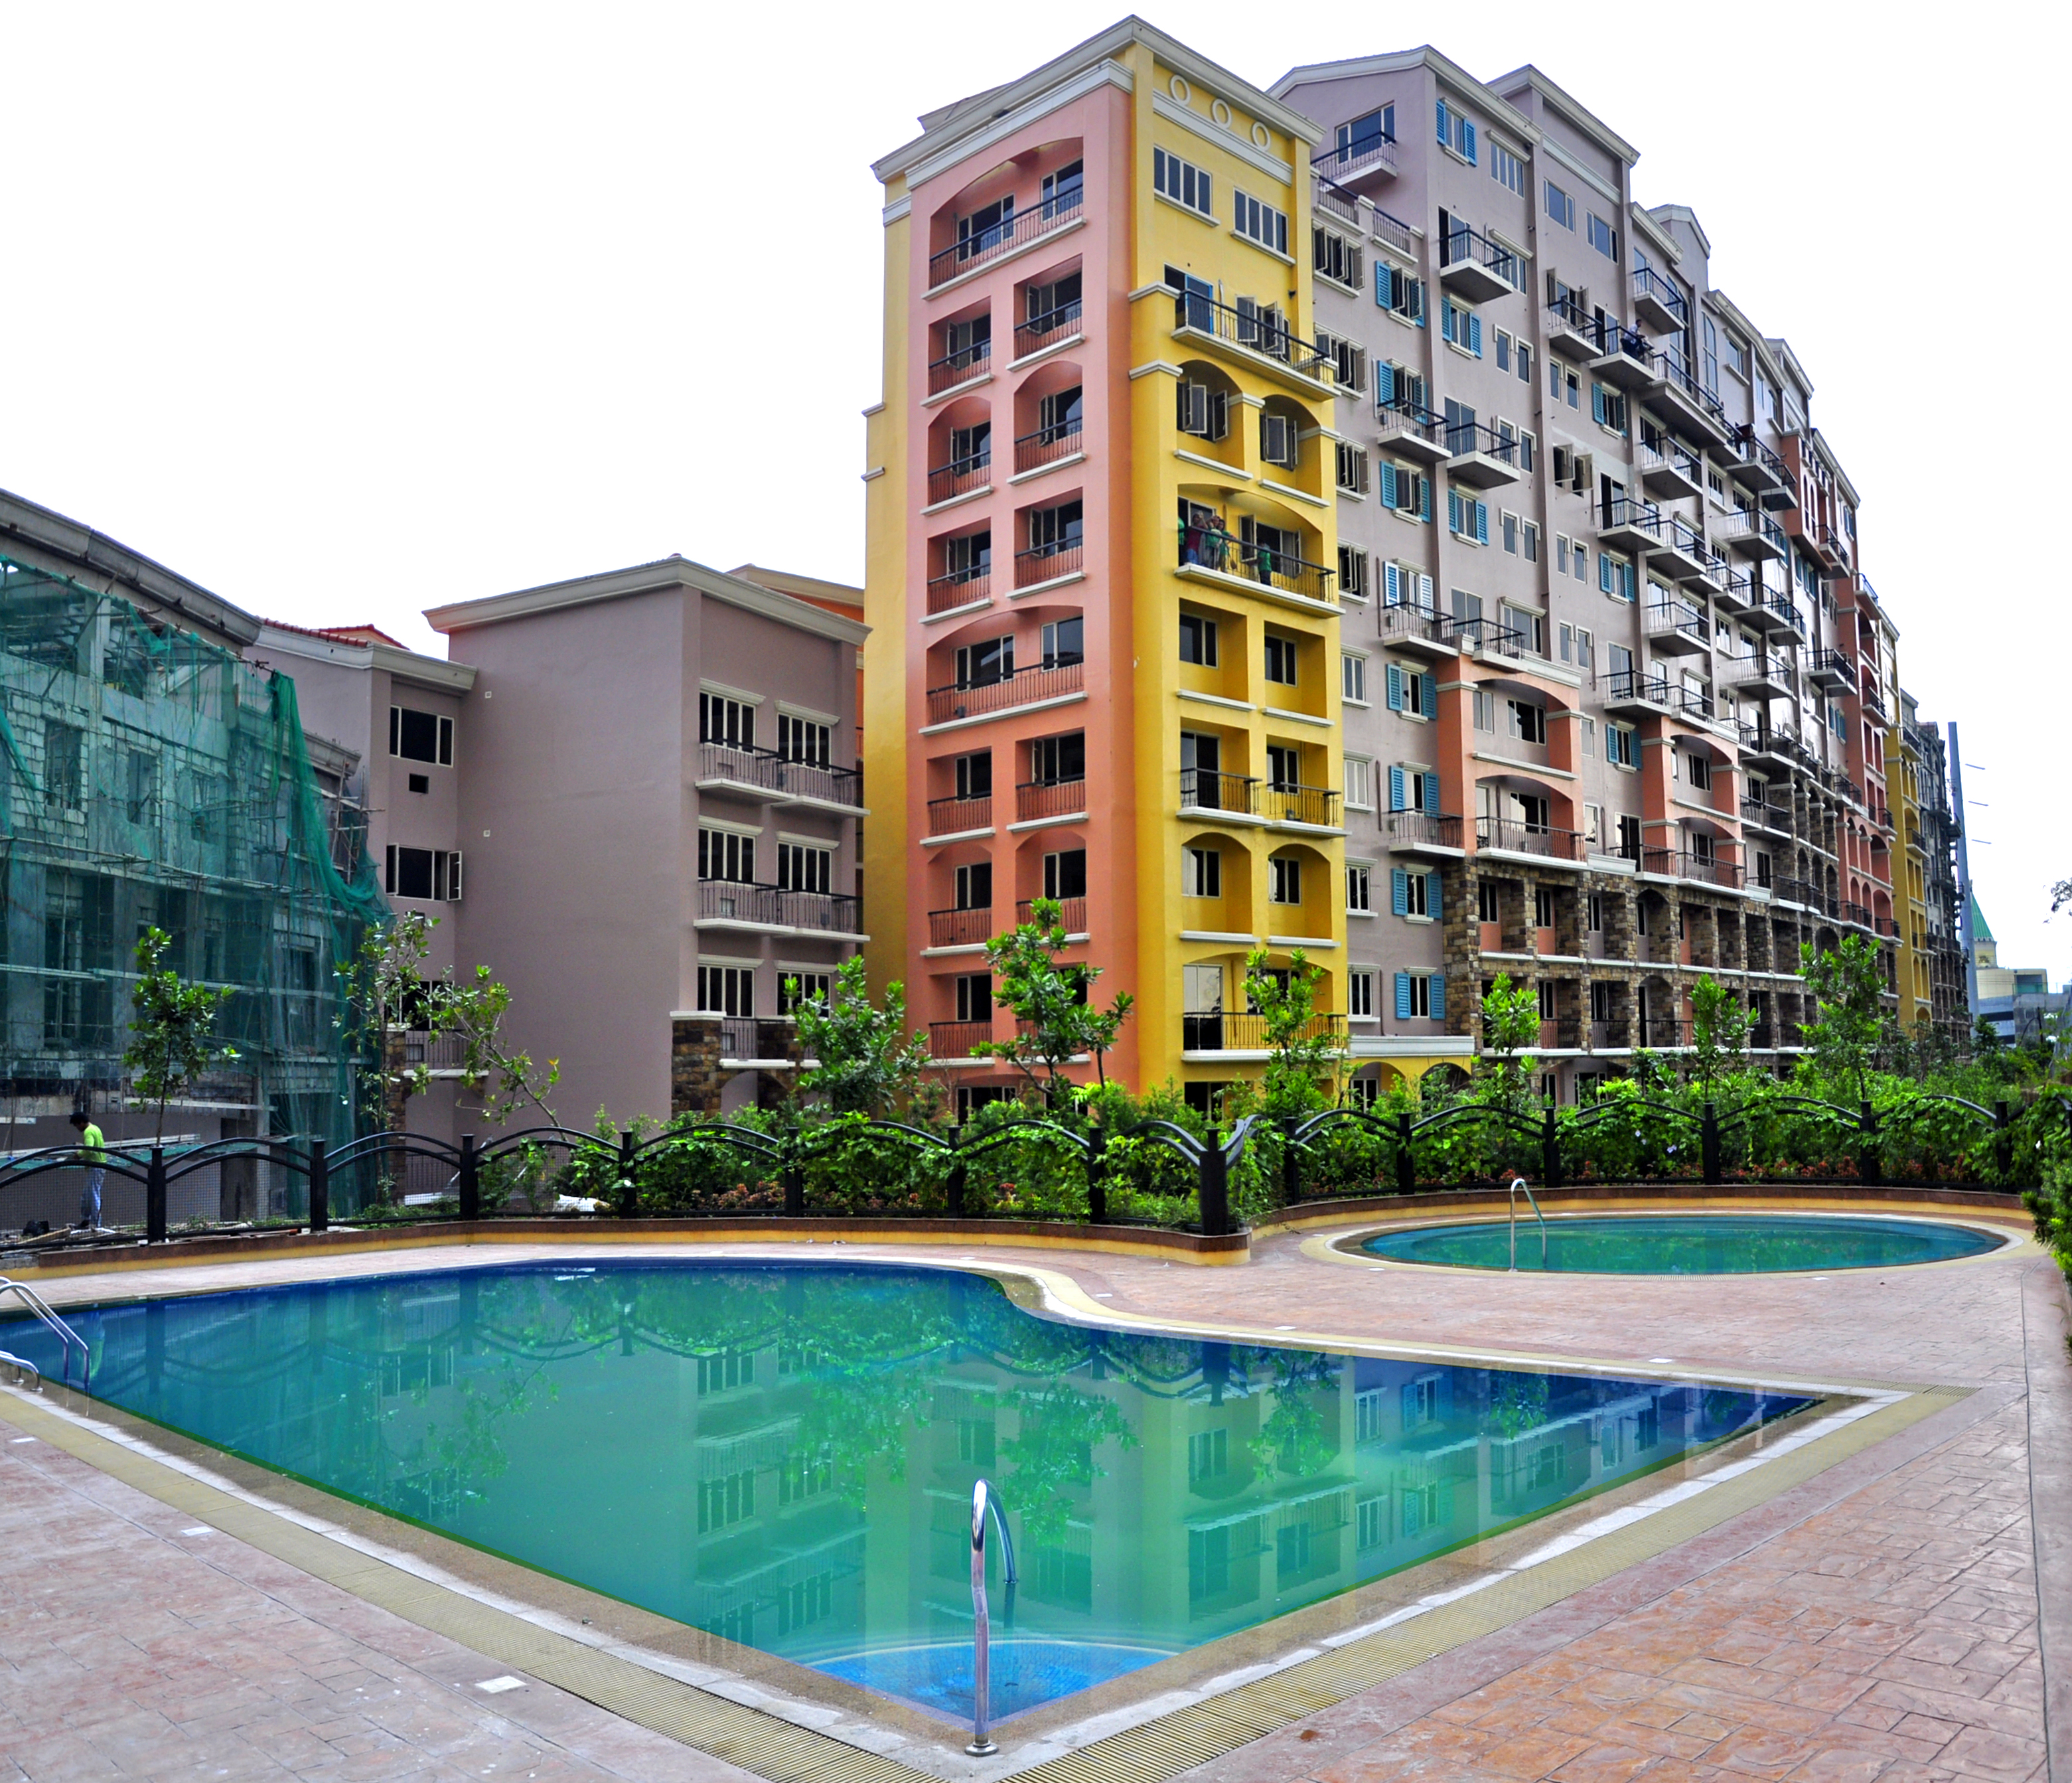 2 Bdrm Condos For Rent: Tuscany -Two Bedroom Condo For Rent At Mckinley Hill Taguig